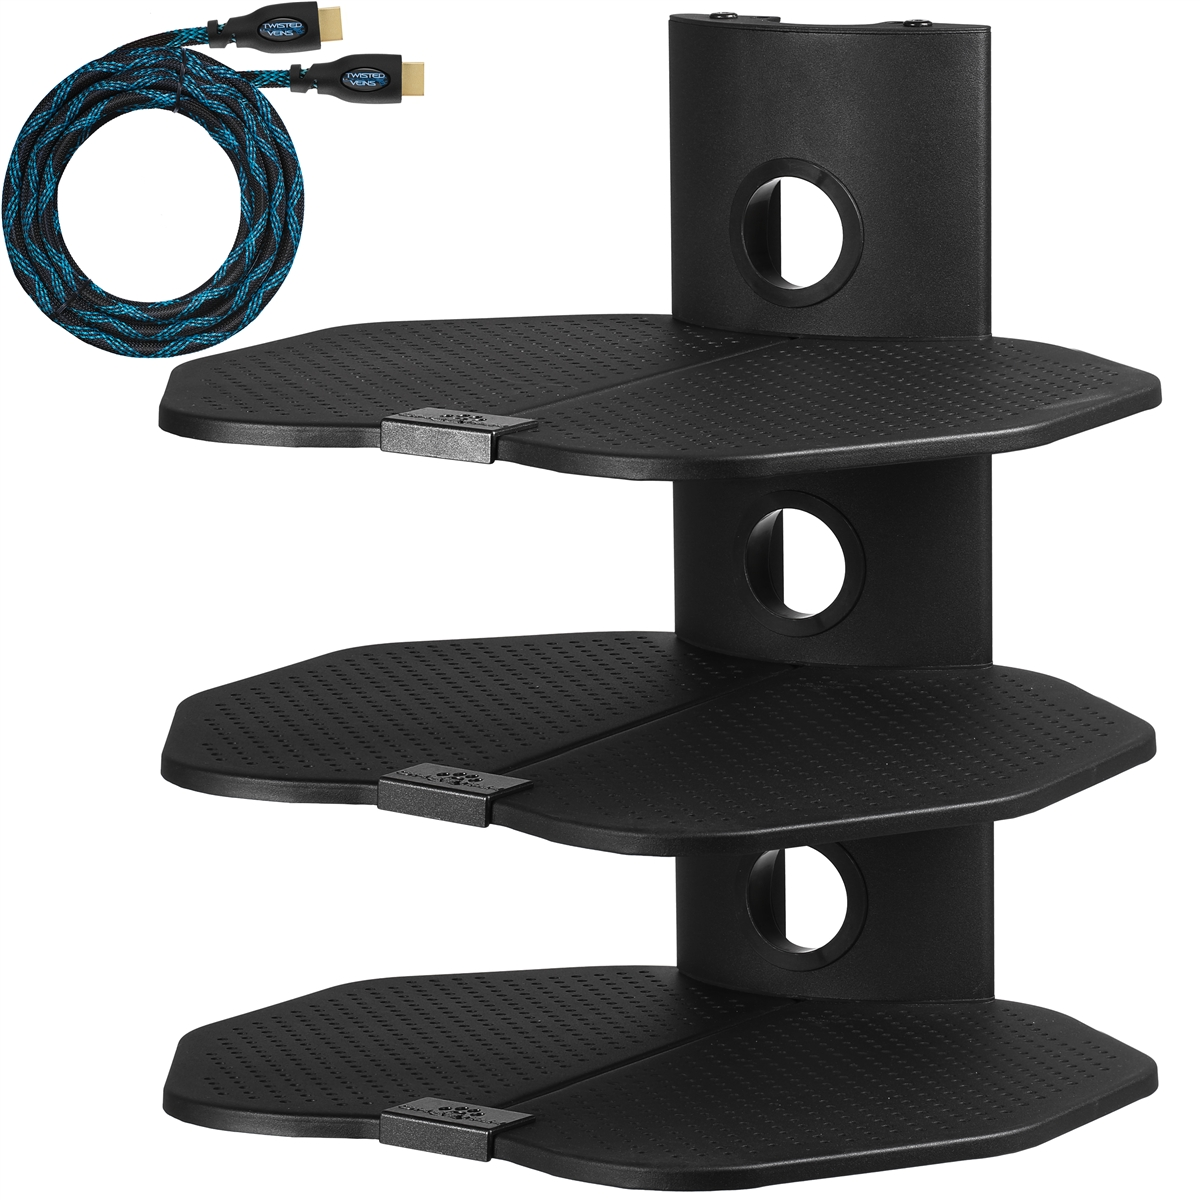 Cheetah Mounts As3b Three 3 Shelf Tv Component Wall Mount Shelving Bracket With 18x16